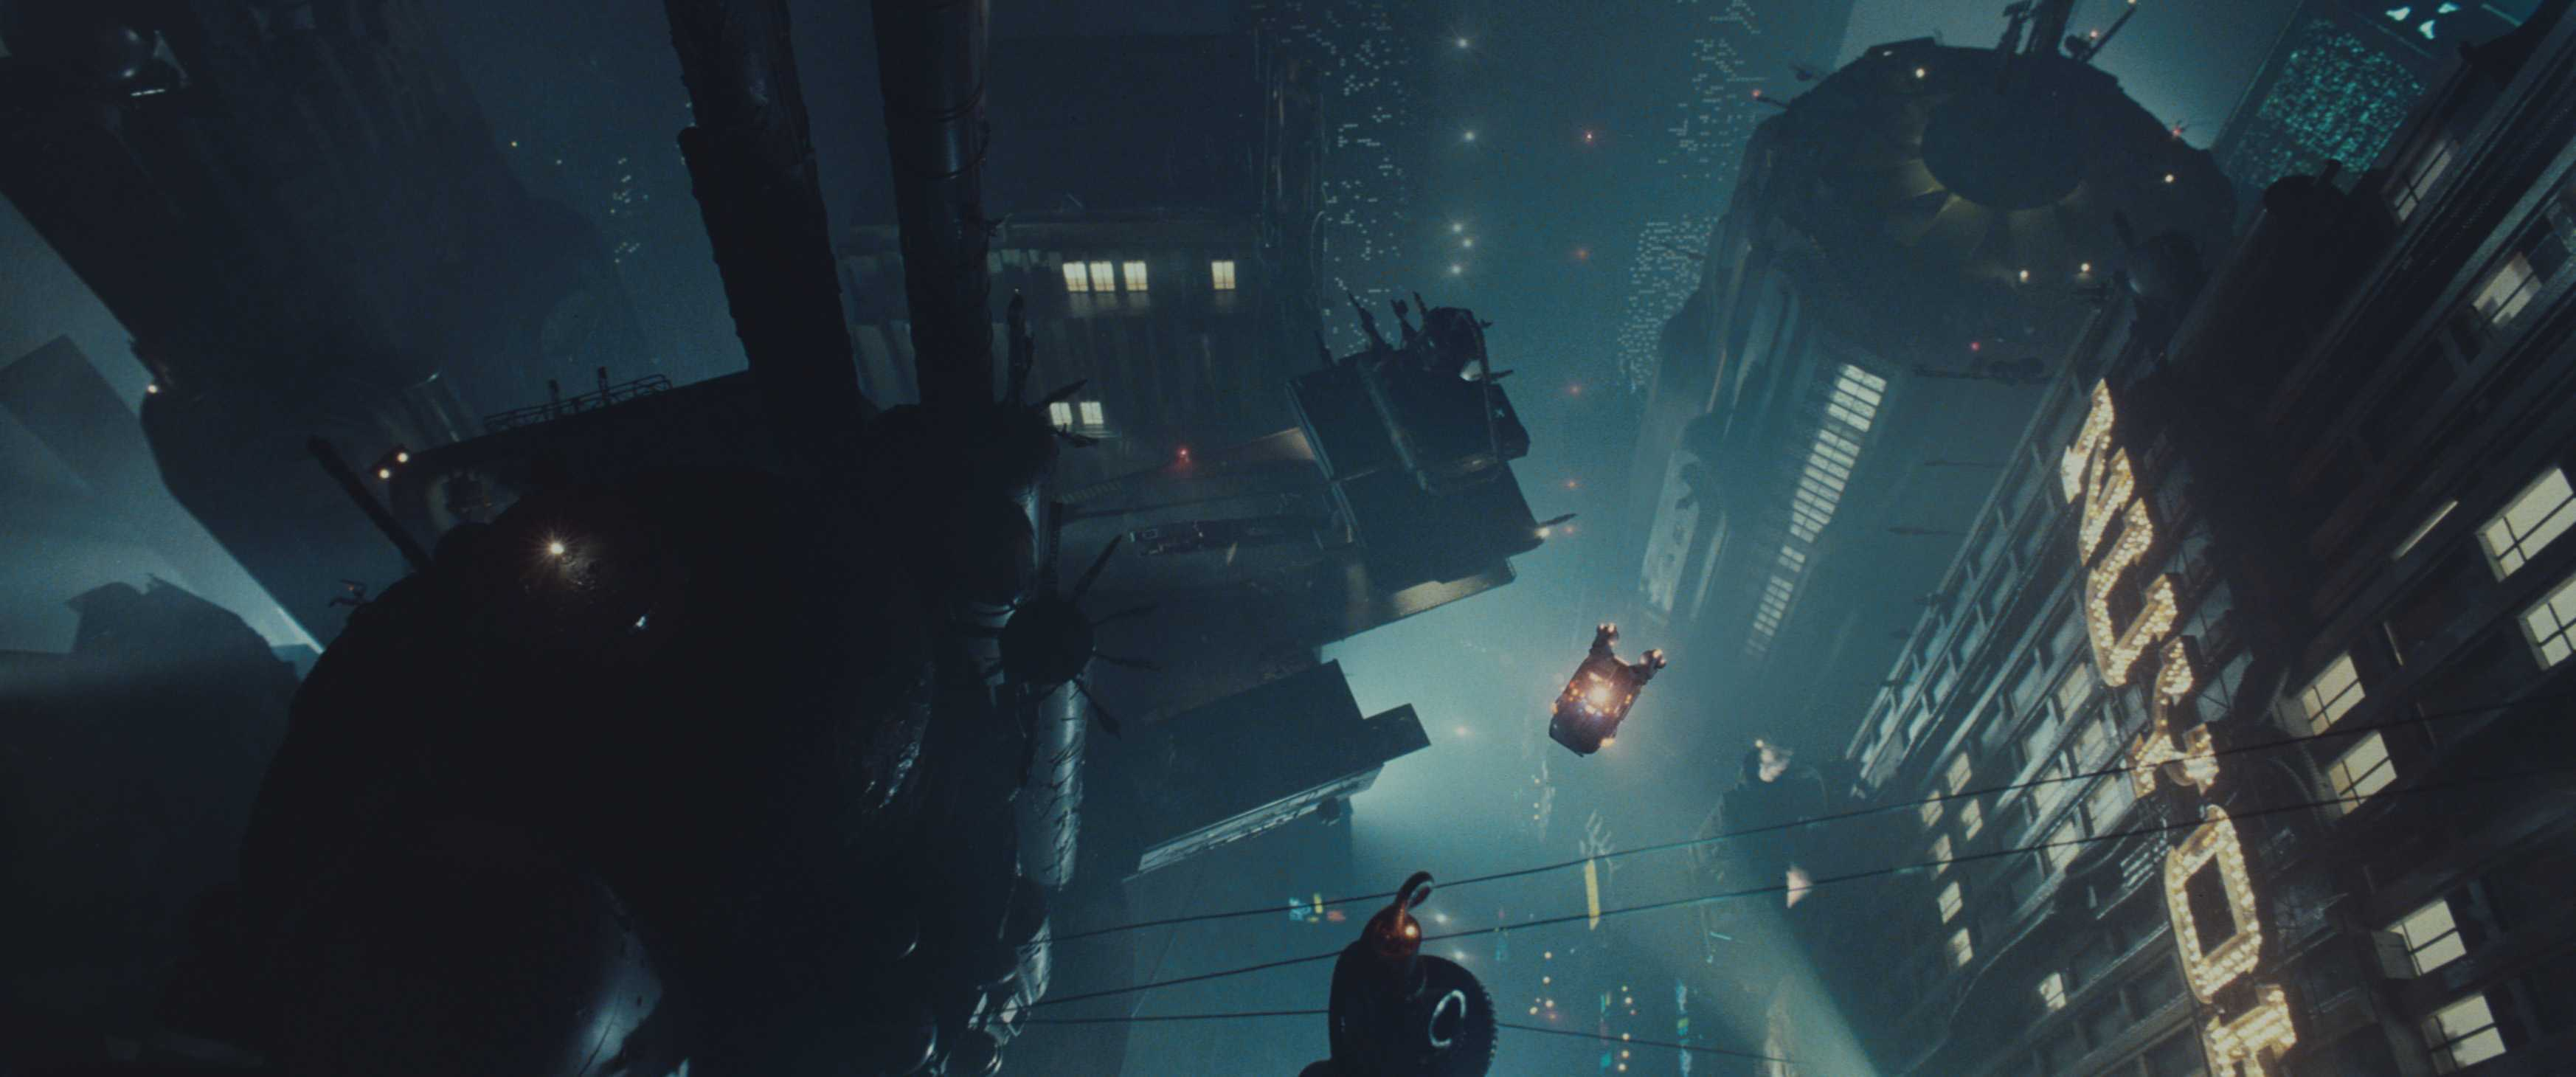 Image result for blade runner cityscape